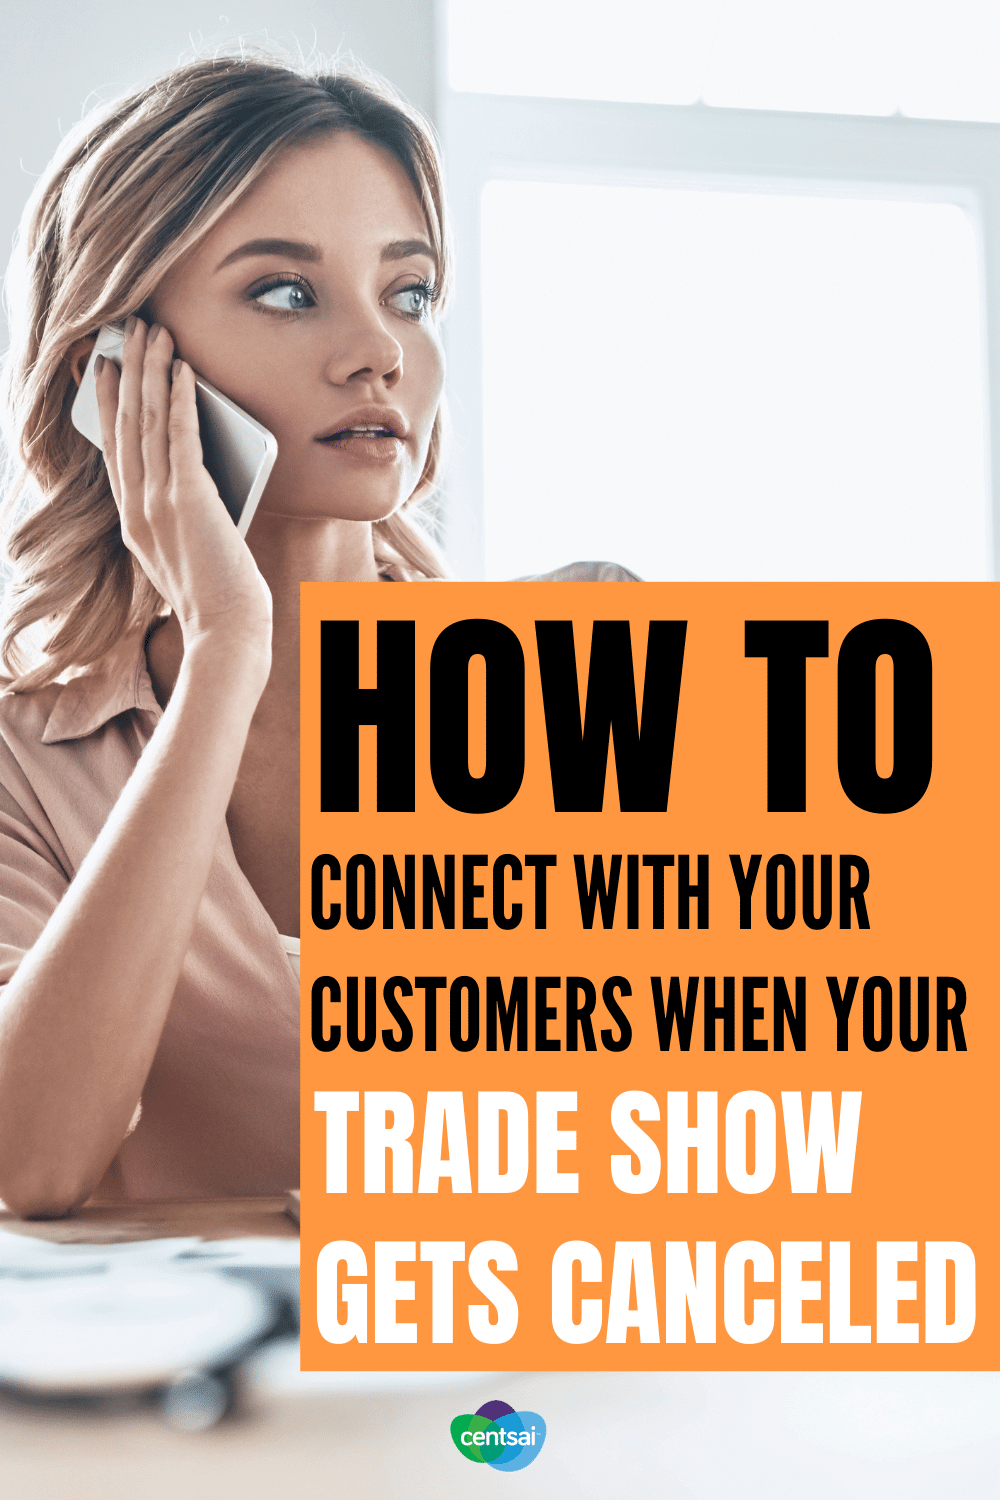 If your 2021 trade show is canceled, there are still ways many ways to network in a digital space. Check out these six recommendations. #CentSai #entrepreneurtips #entrepreneurideas #peertopeer #peertopeernetwork